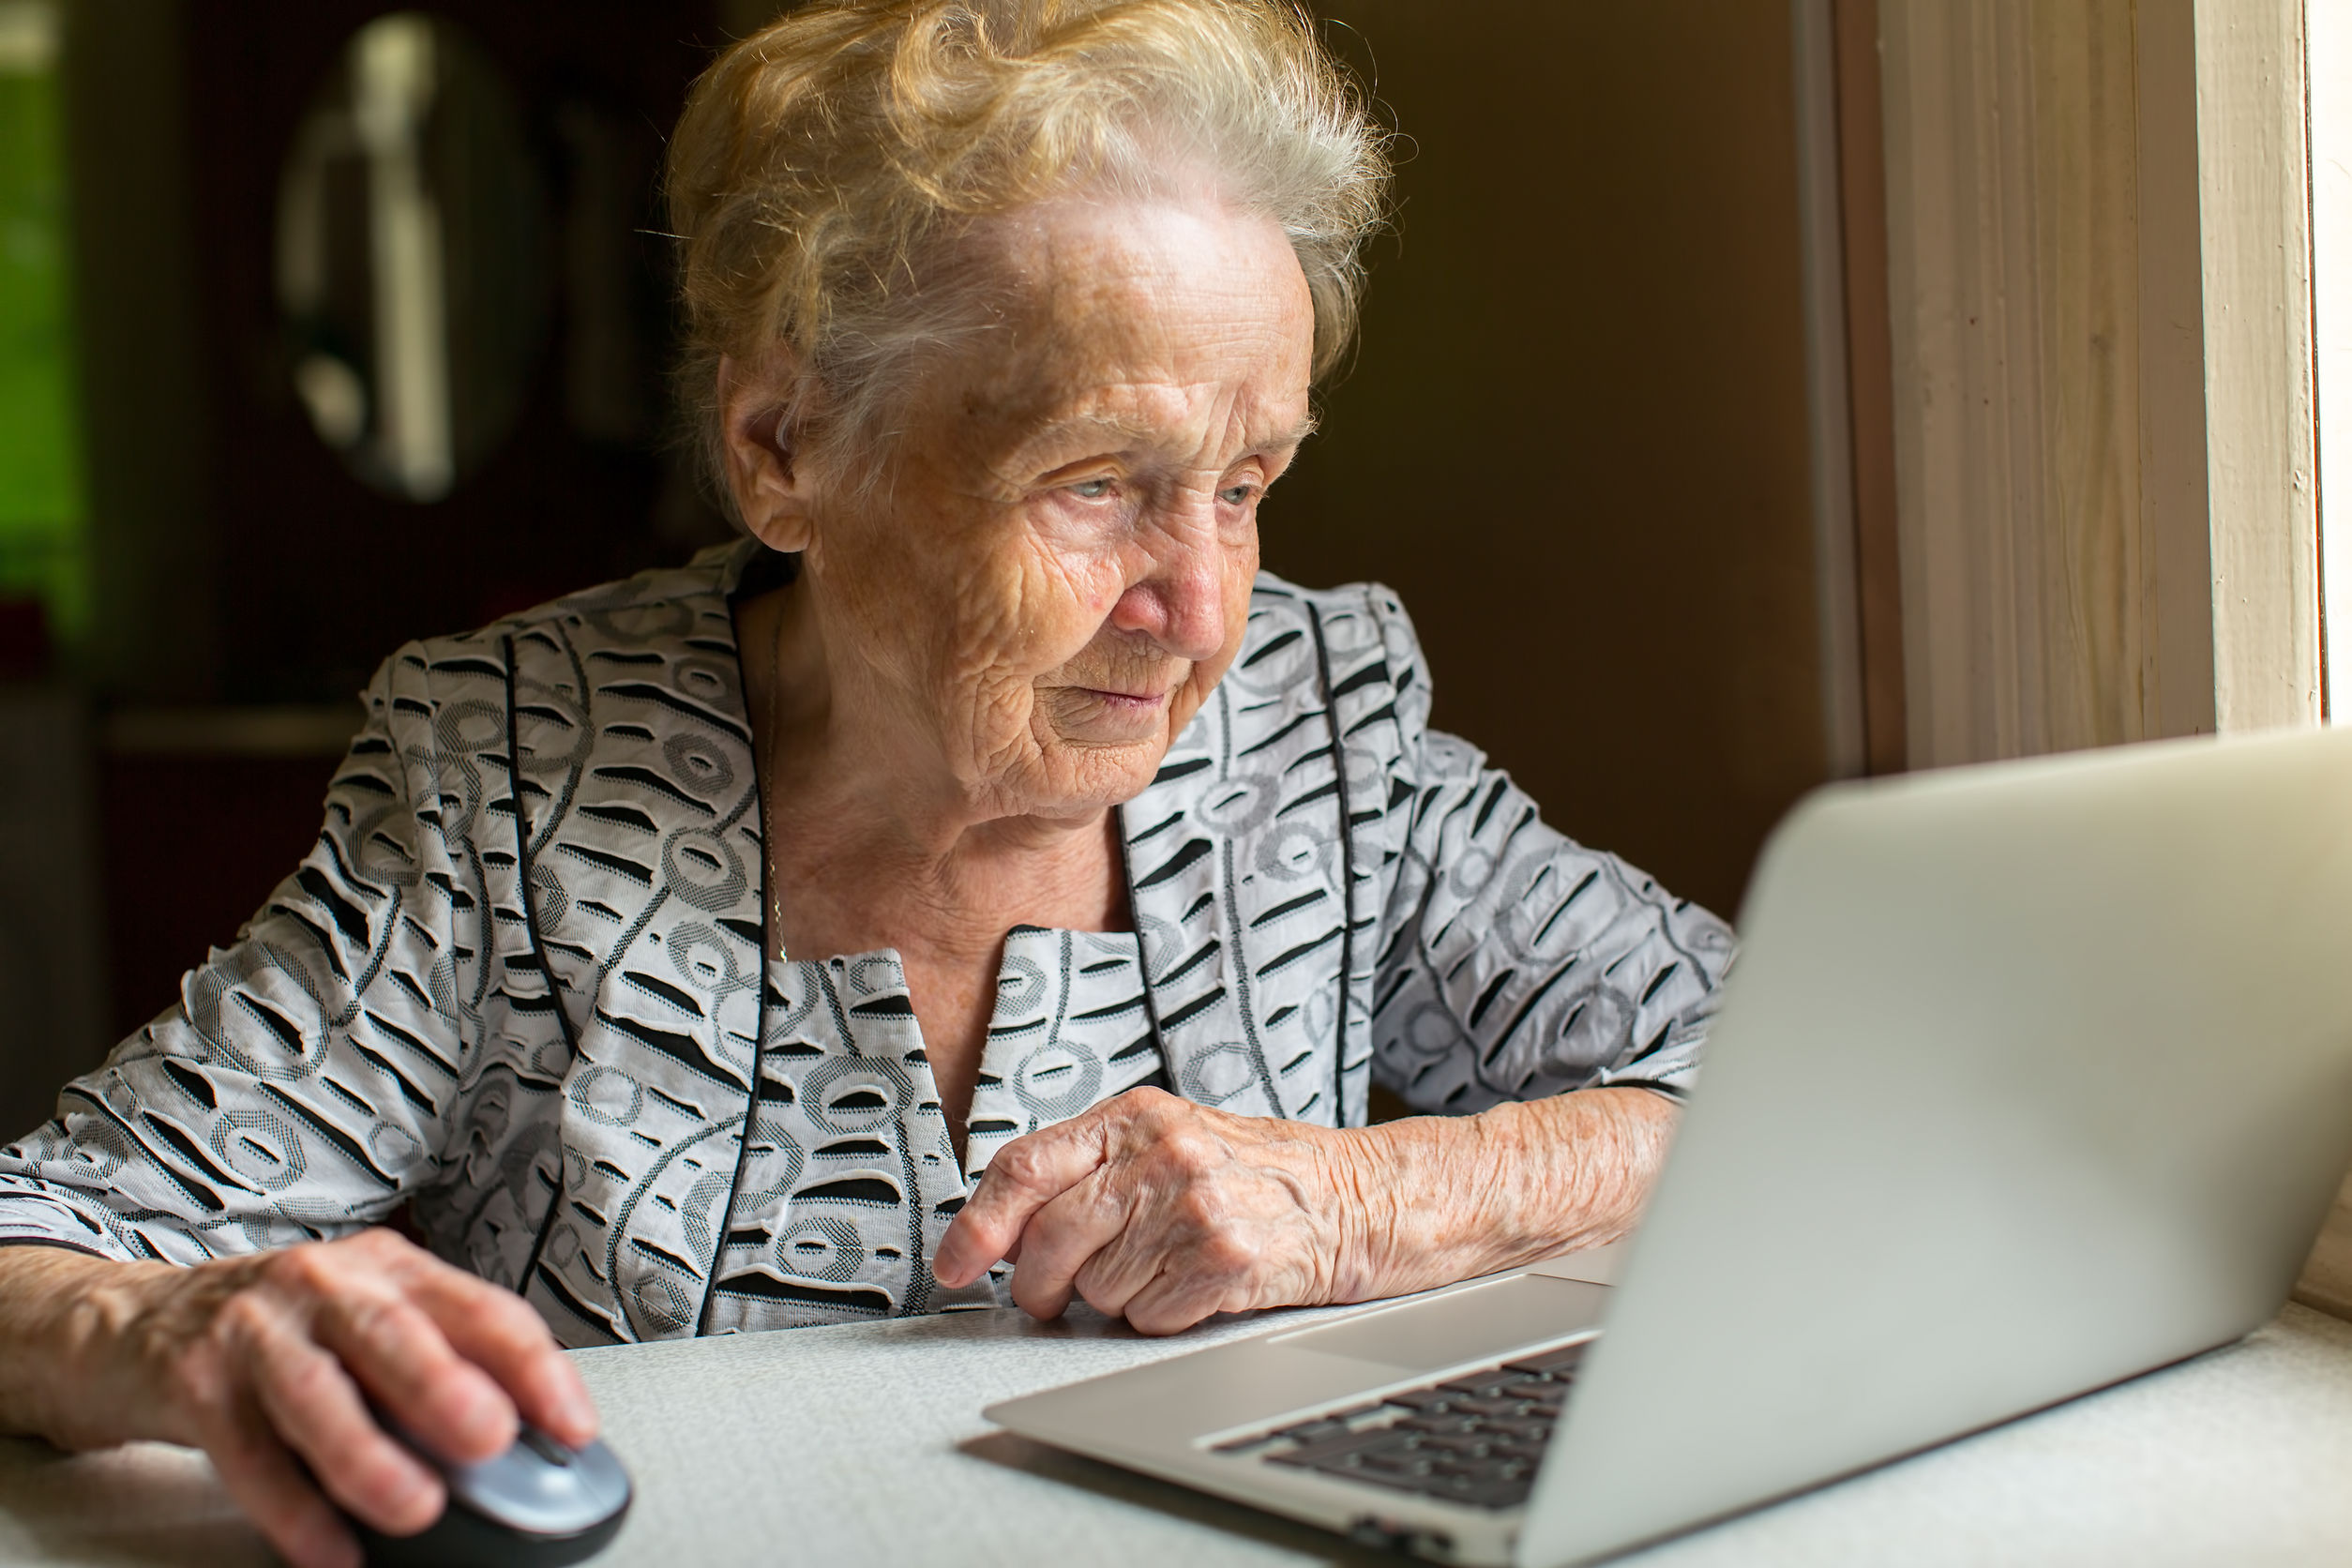 An elderly woman working on a laptop.